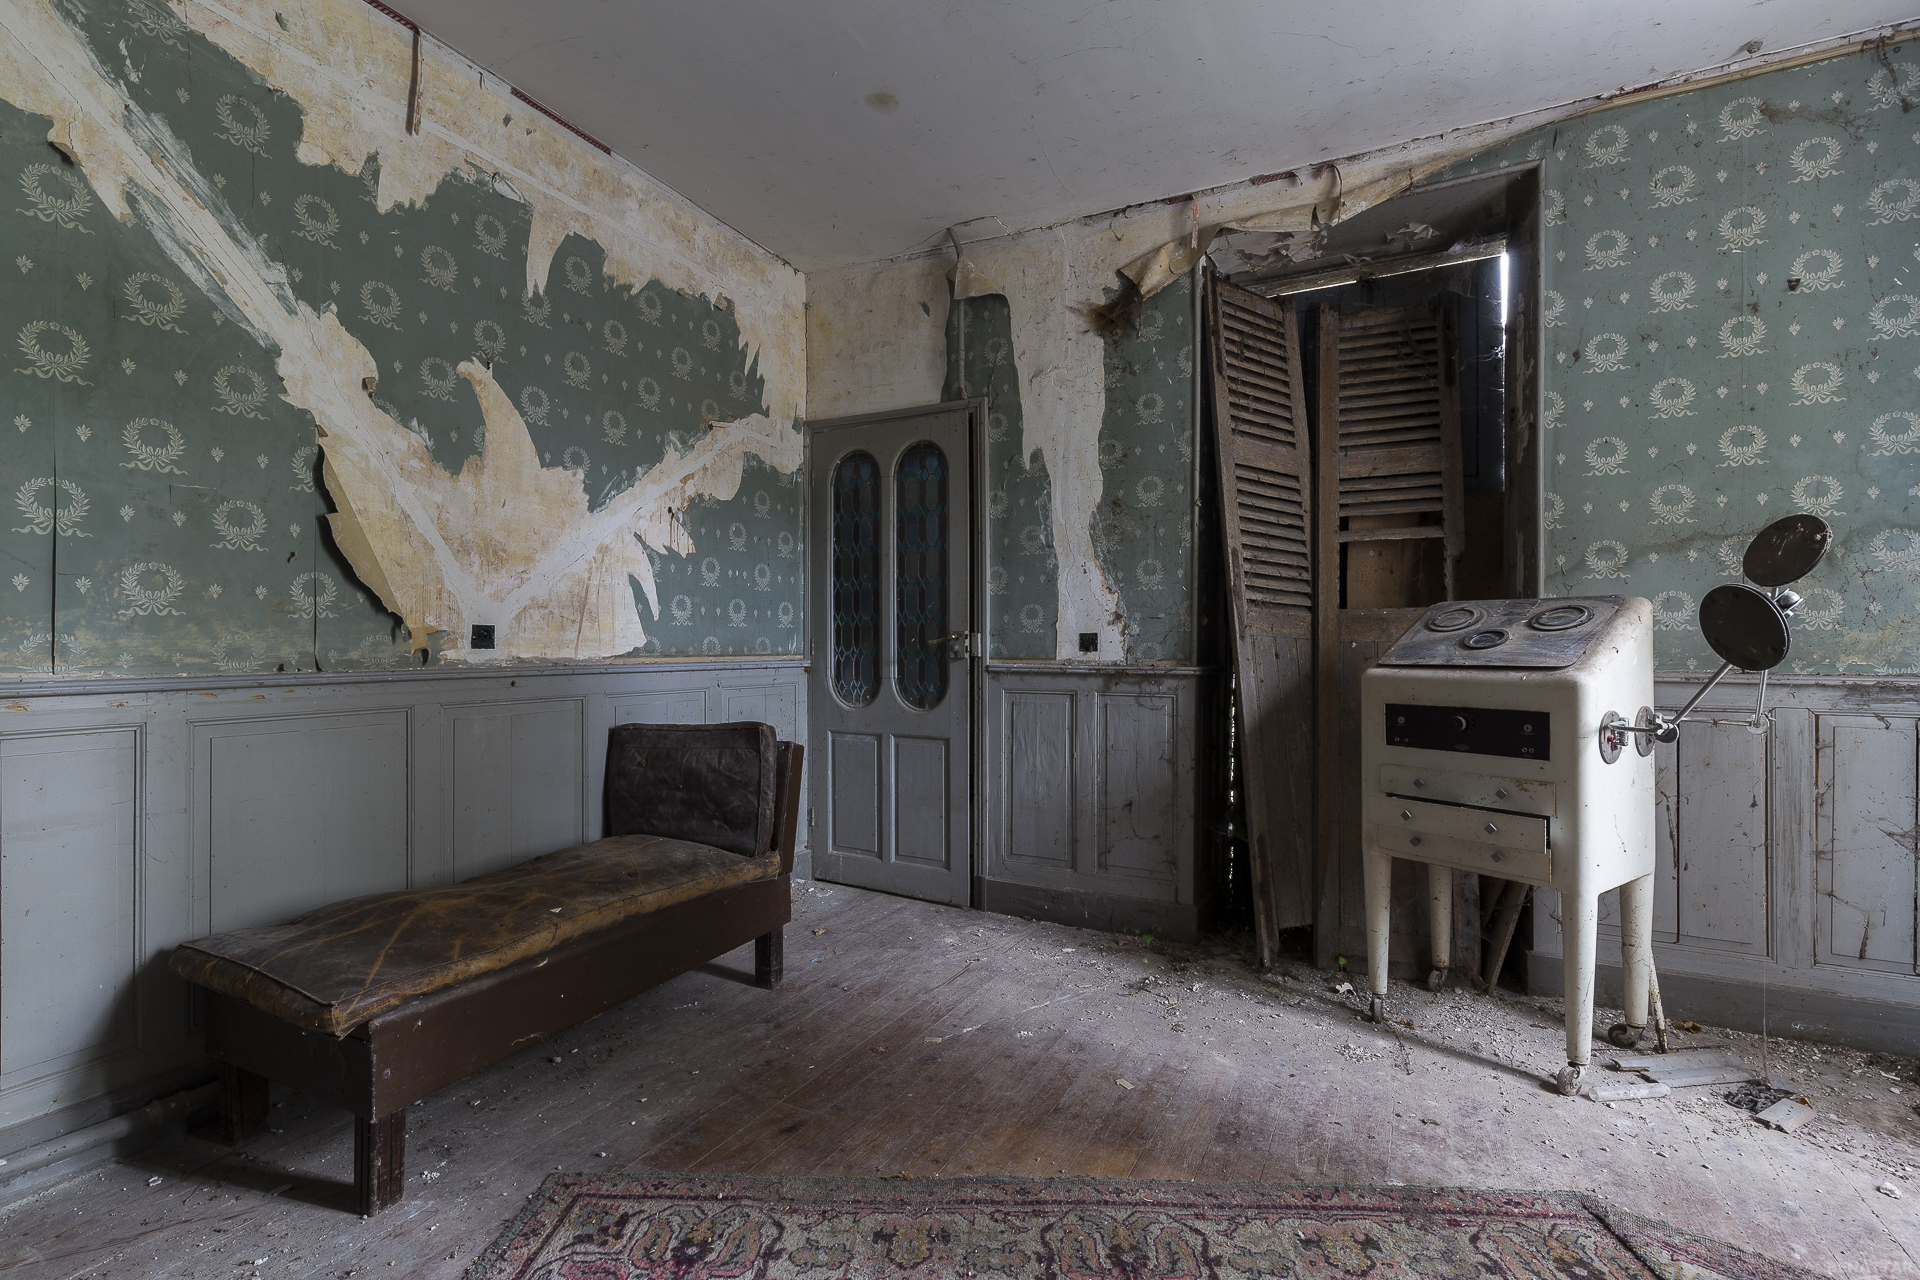 Haunting Images of Abandoned Medical Centres